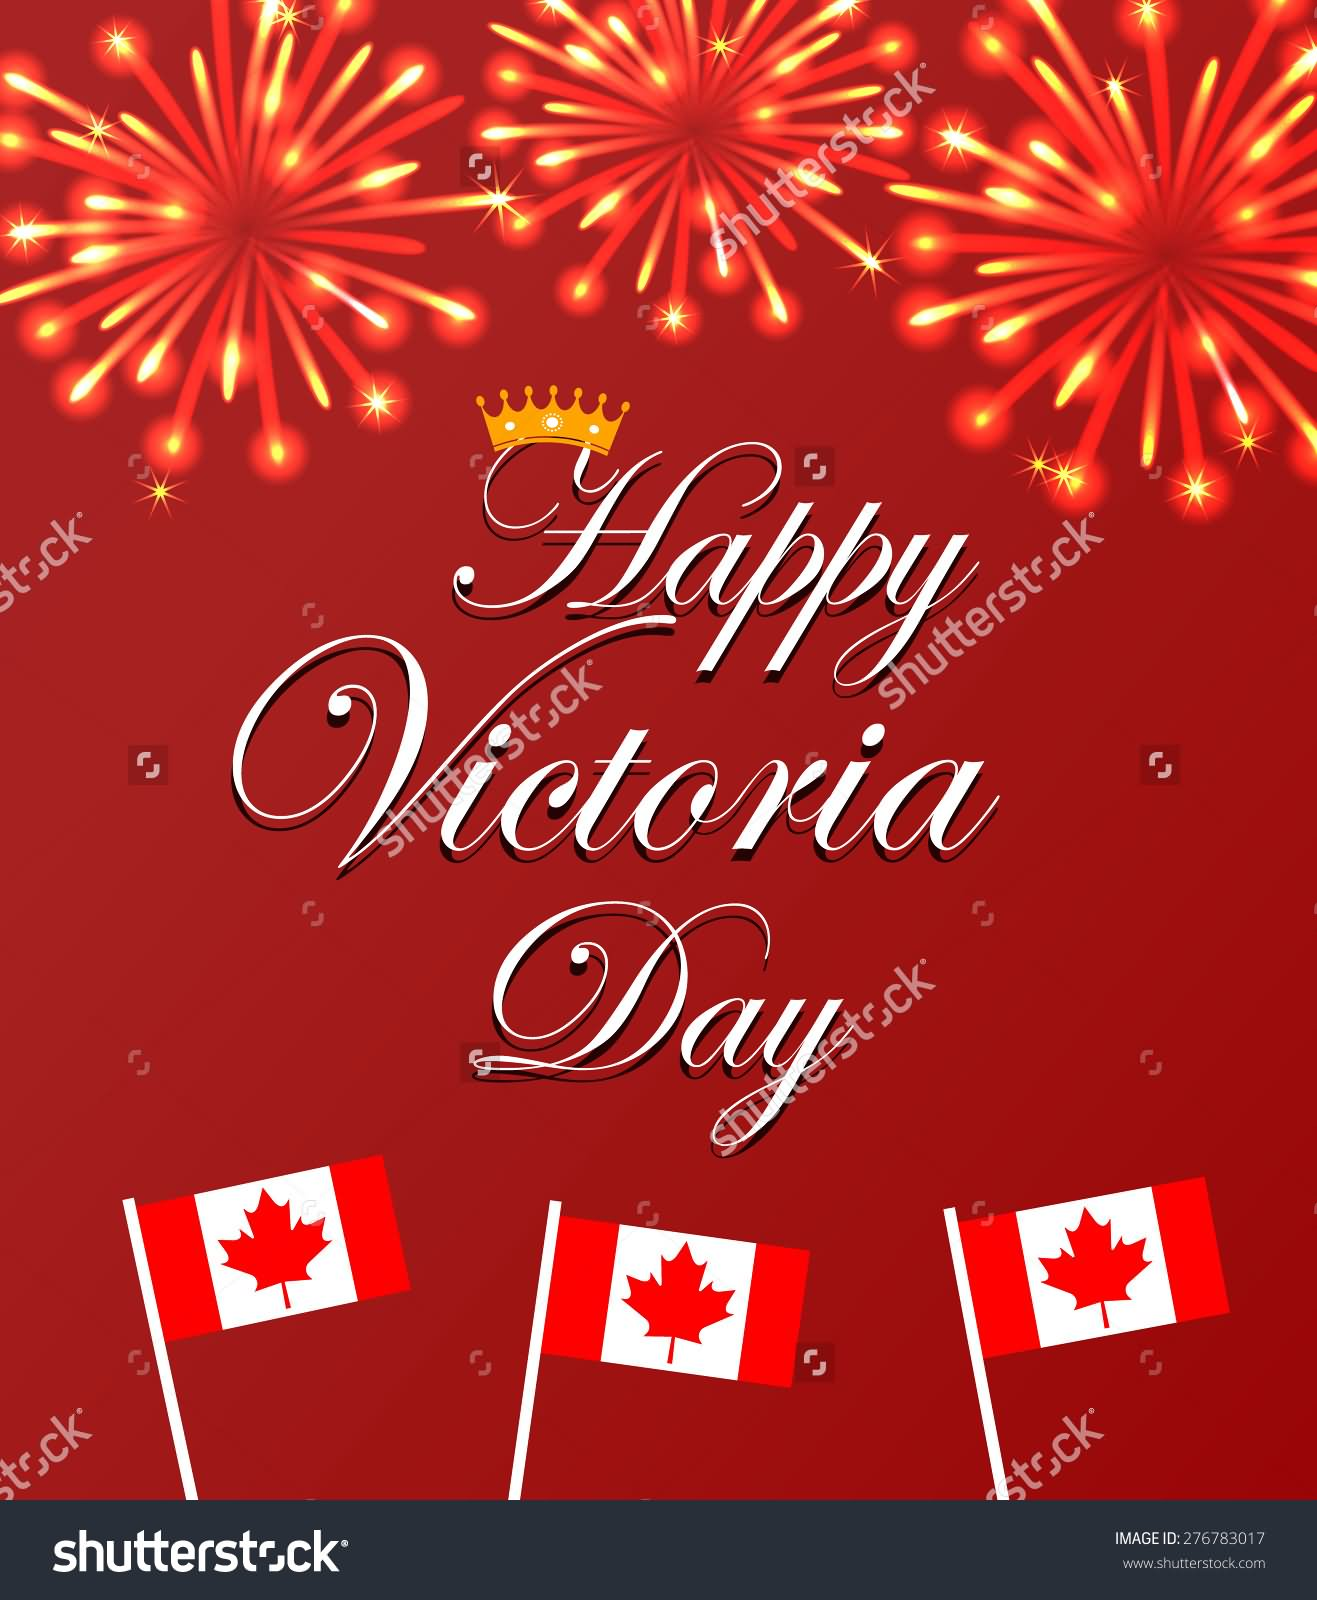 60 Very Best Victoria Day Wish Pictures And Images